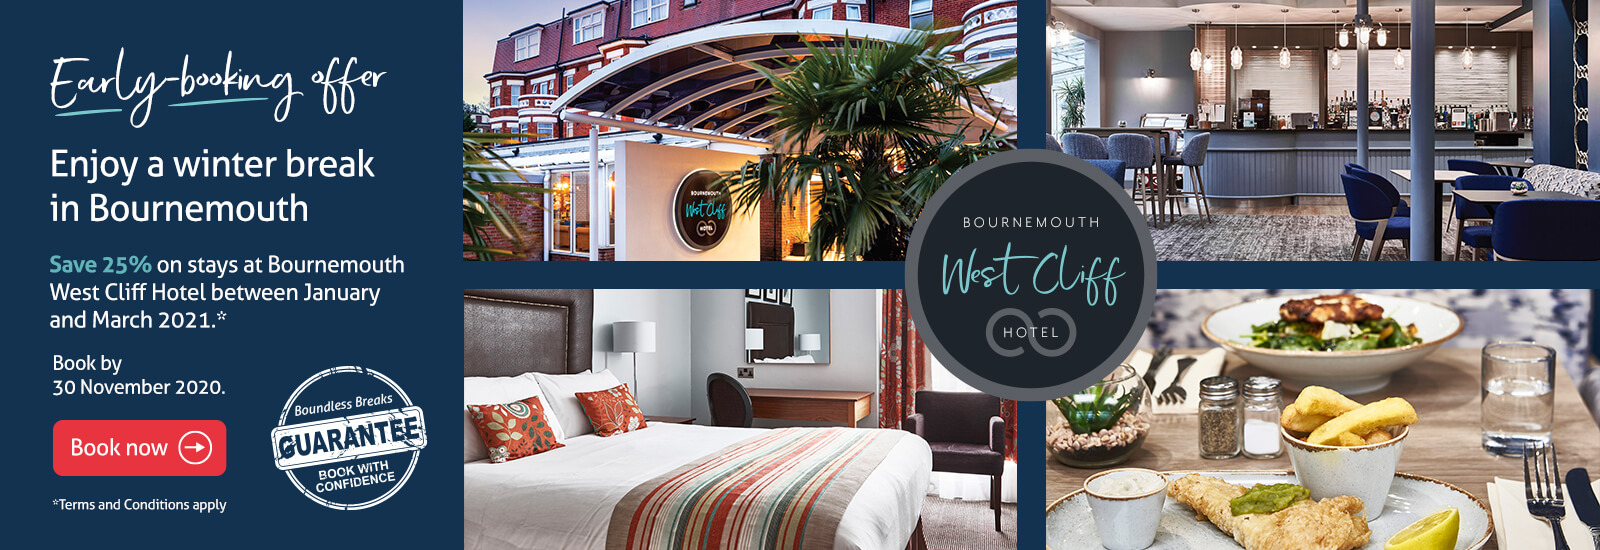 West Cliff Hotel in Bournemouth